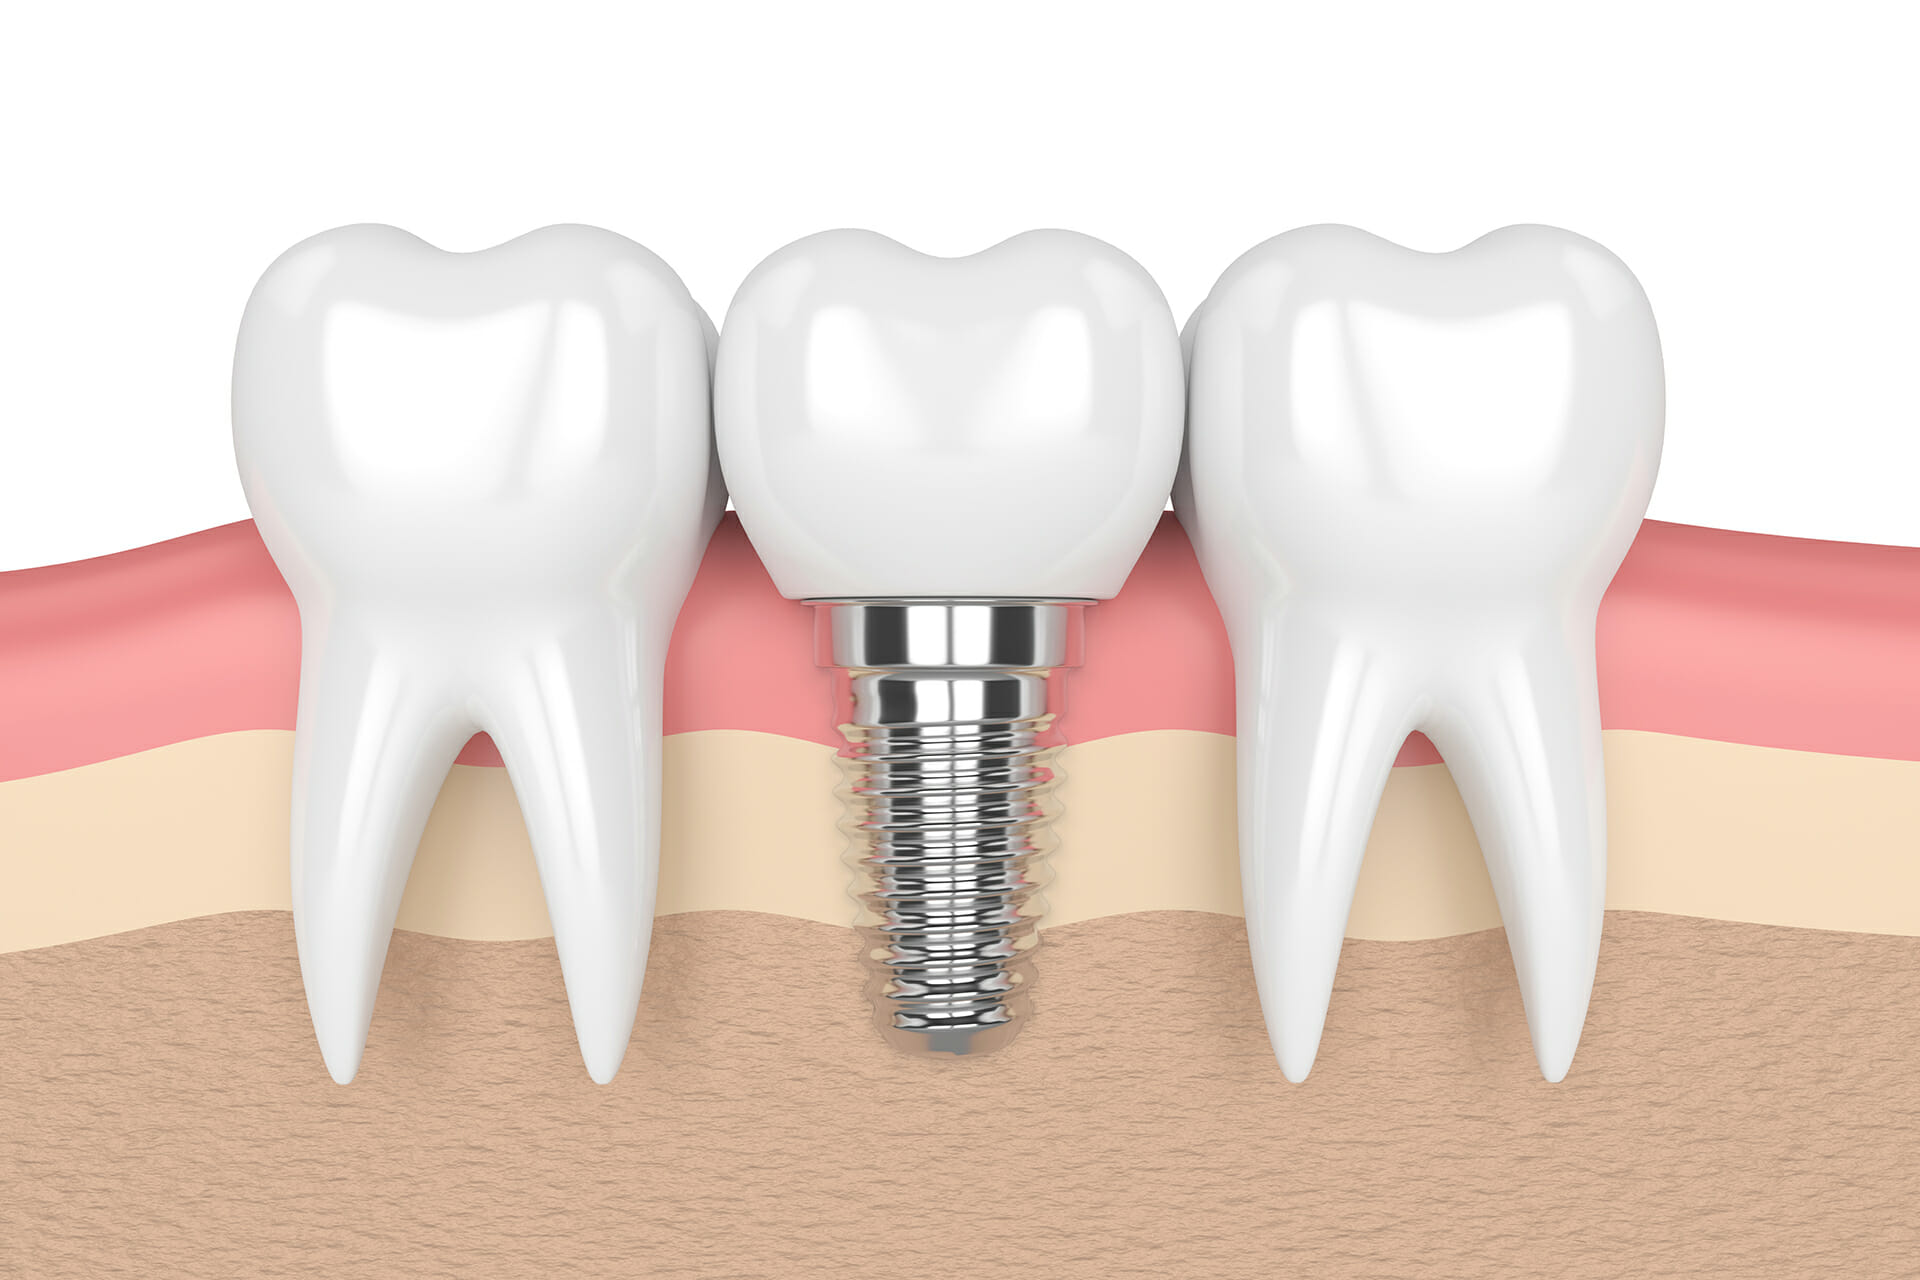 3d render of teeth with dental implant in gums over